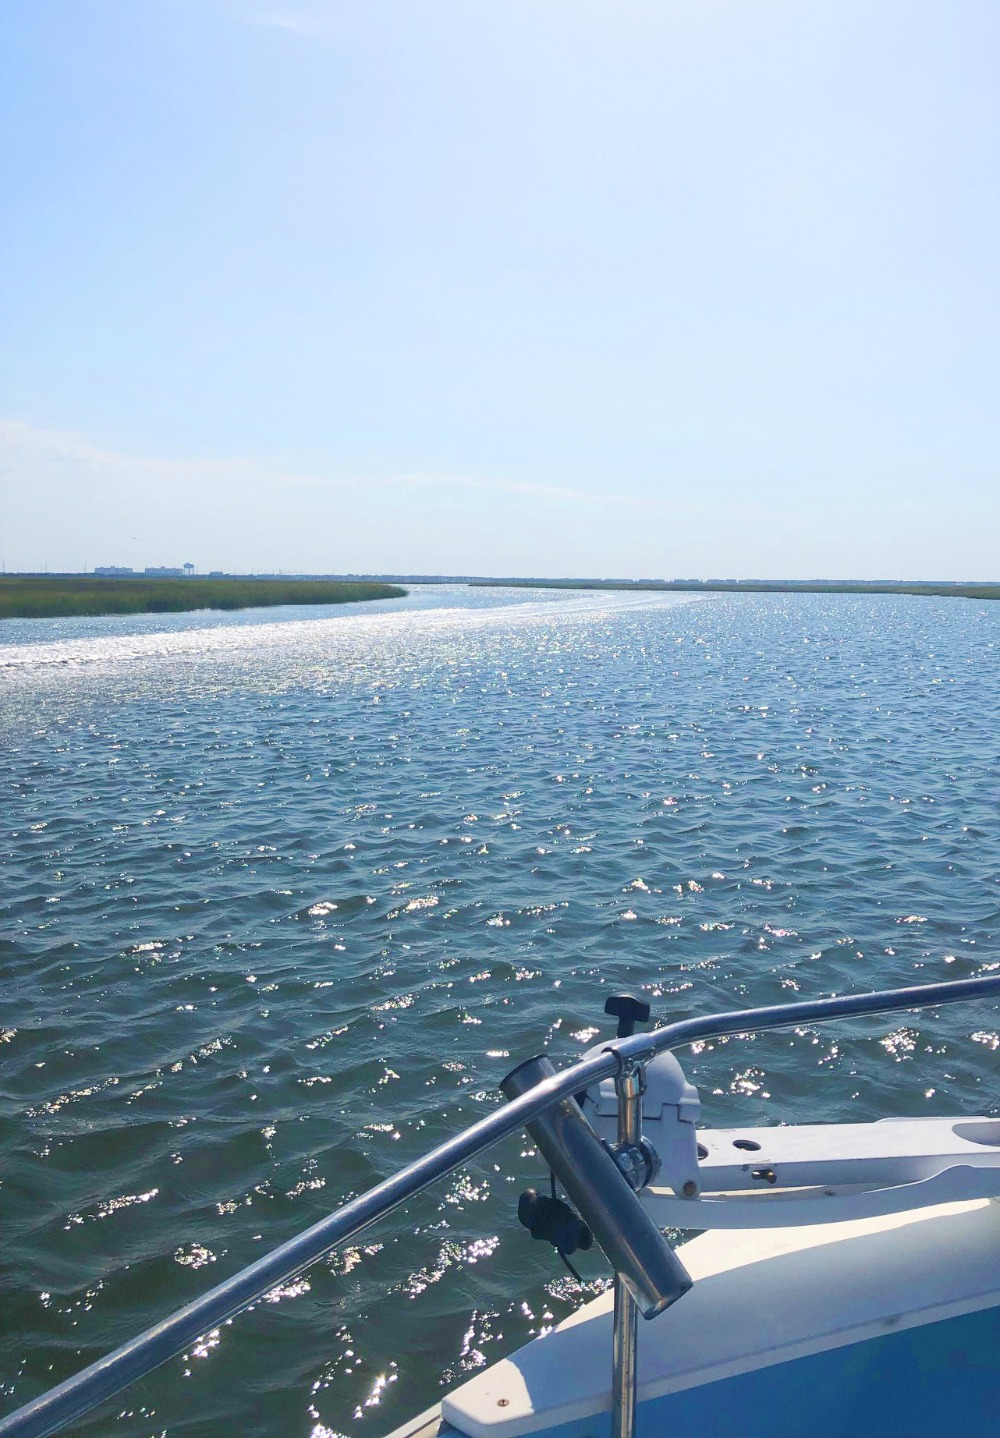 Jersey Shore Photo Diary I Sea Isle City Boat Ride #Travel #TravelBlogger #TravelPhotography